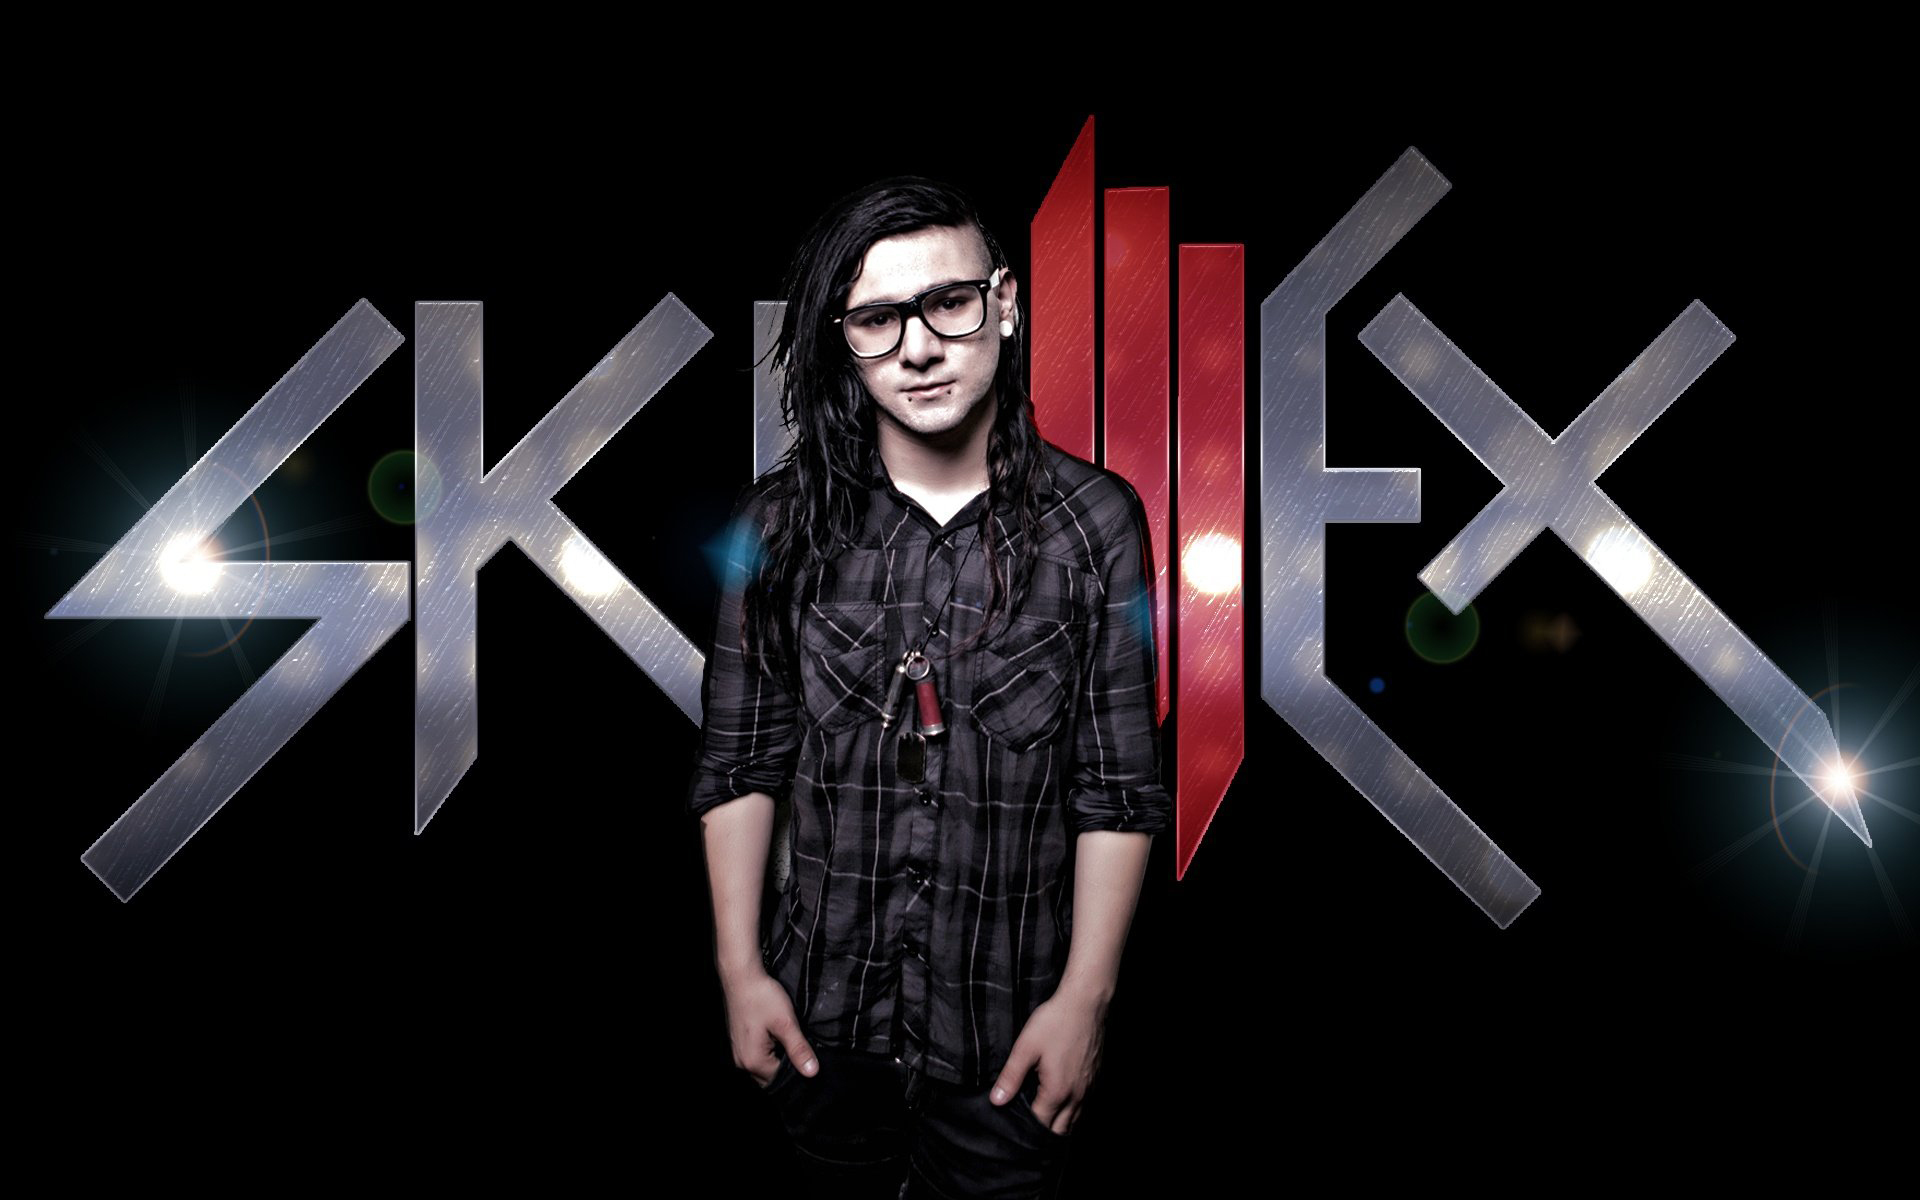 Dj Wallpapers Hd 2016: Skrillex Wallpapers Images Photos Pictures Backgrounds